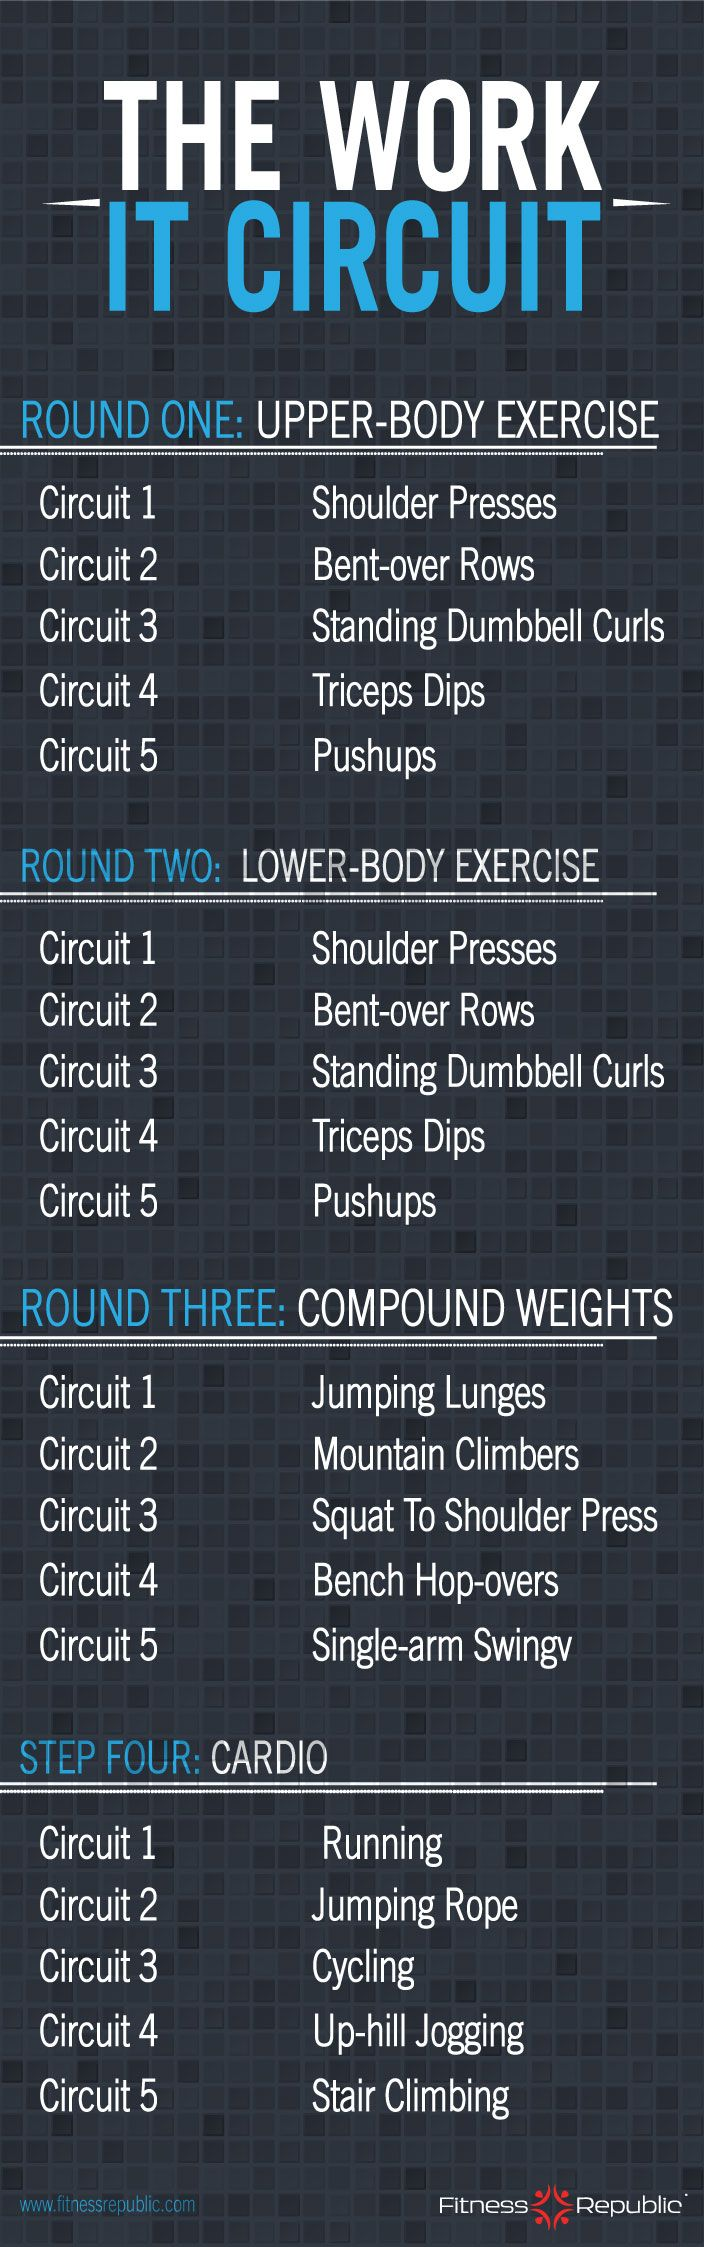 http://www.fitnessrepublic.com/fitness/exercises/the-work-it-circuit.html